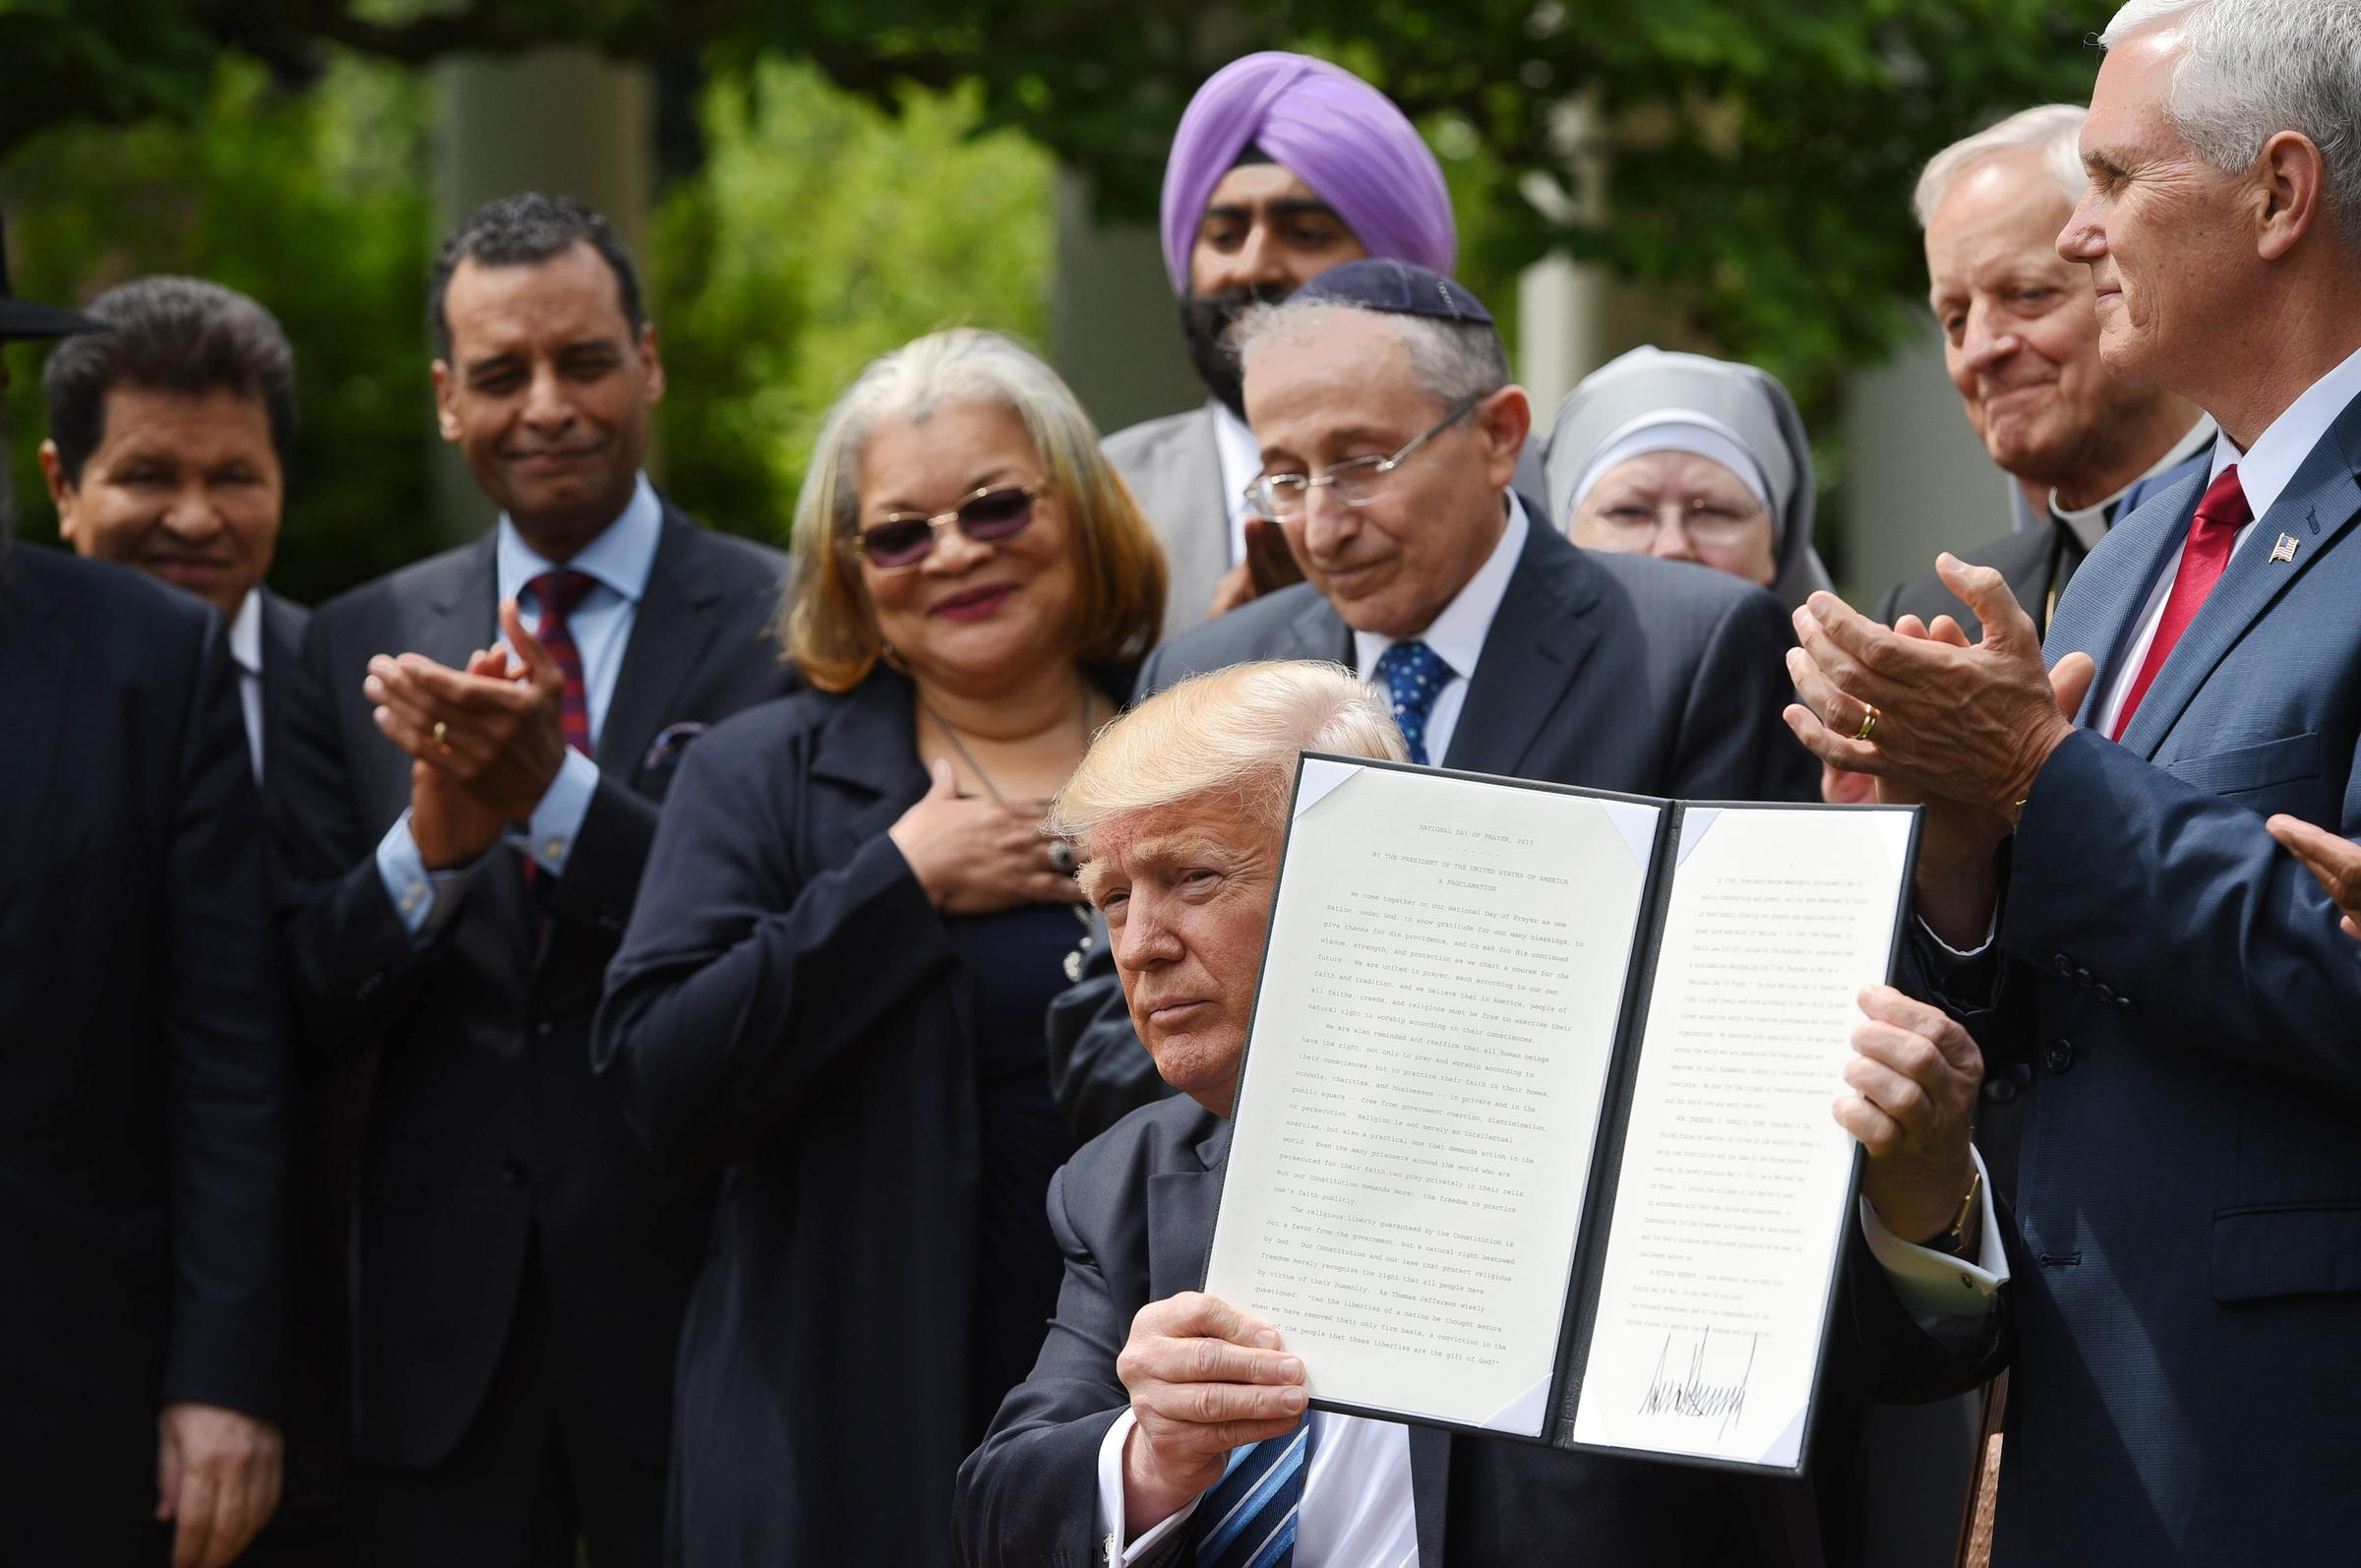 Trump signs executive order on religious liberty